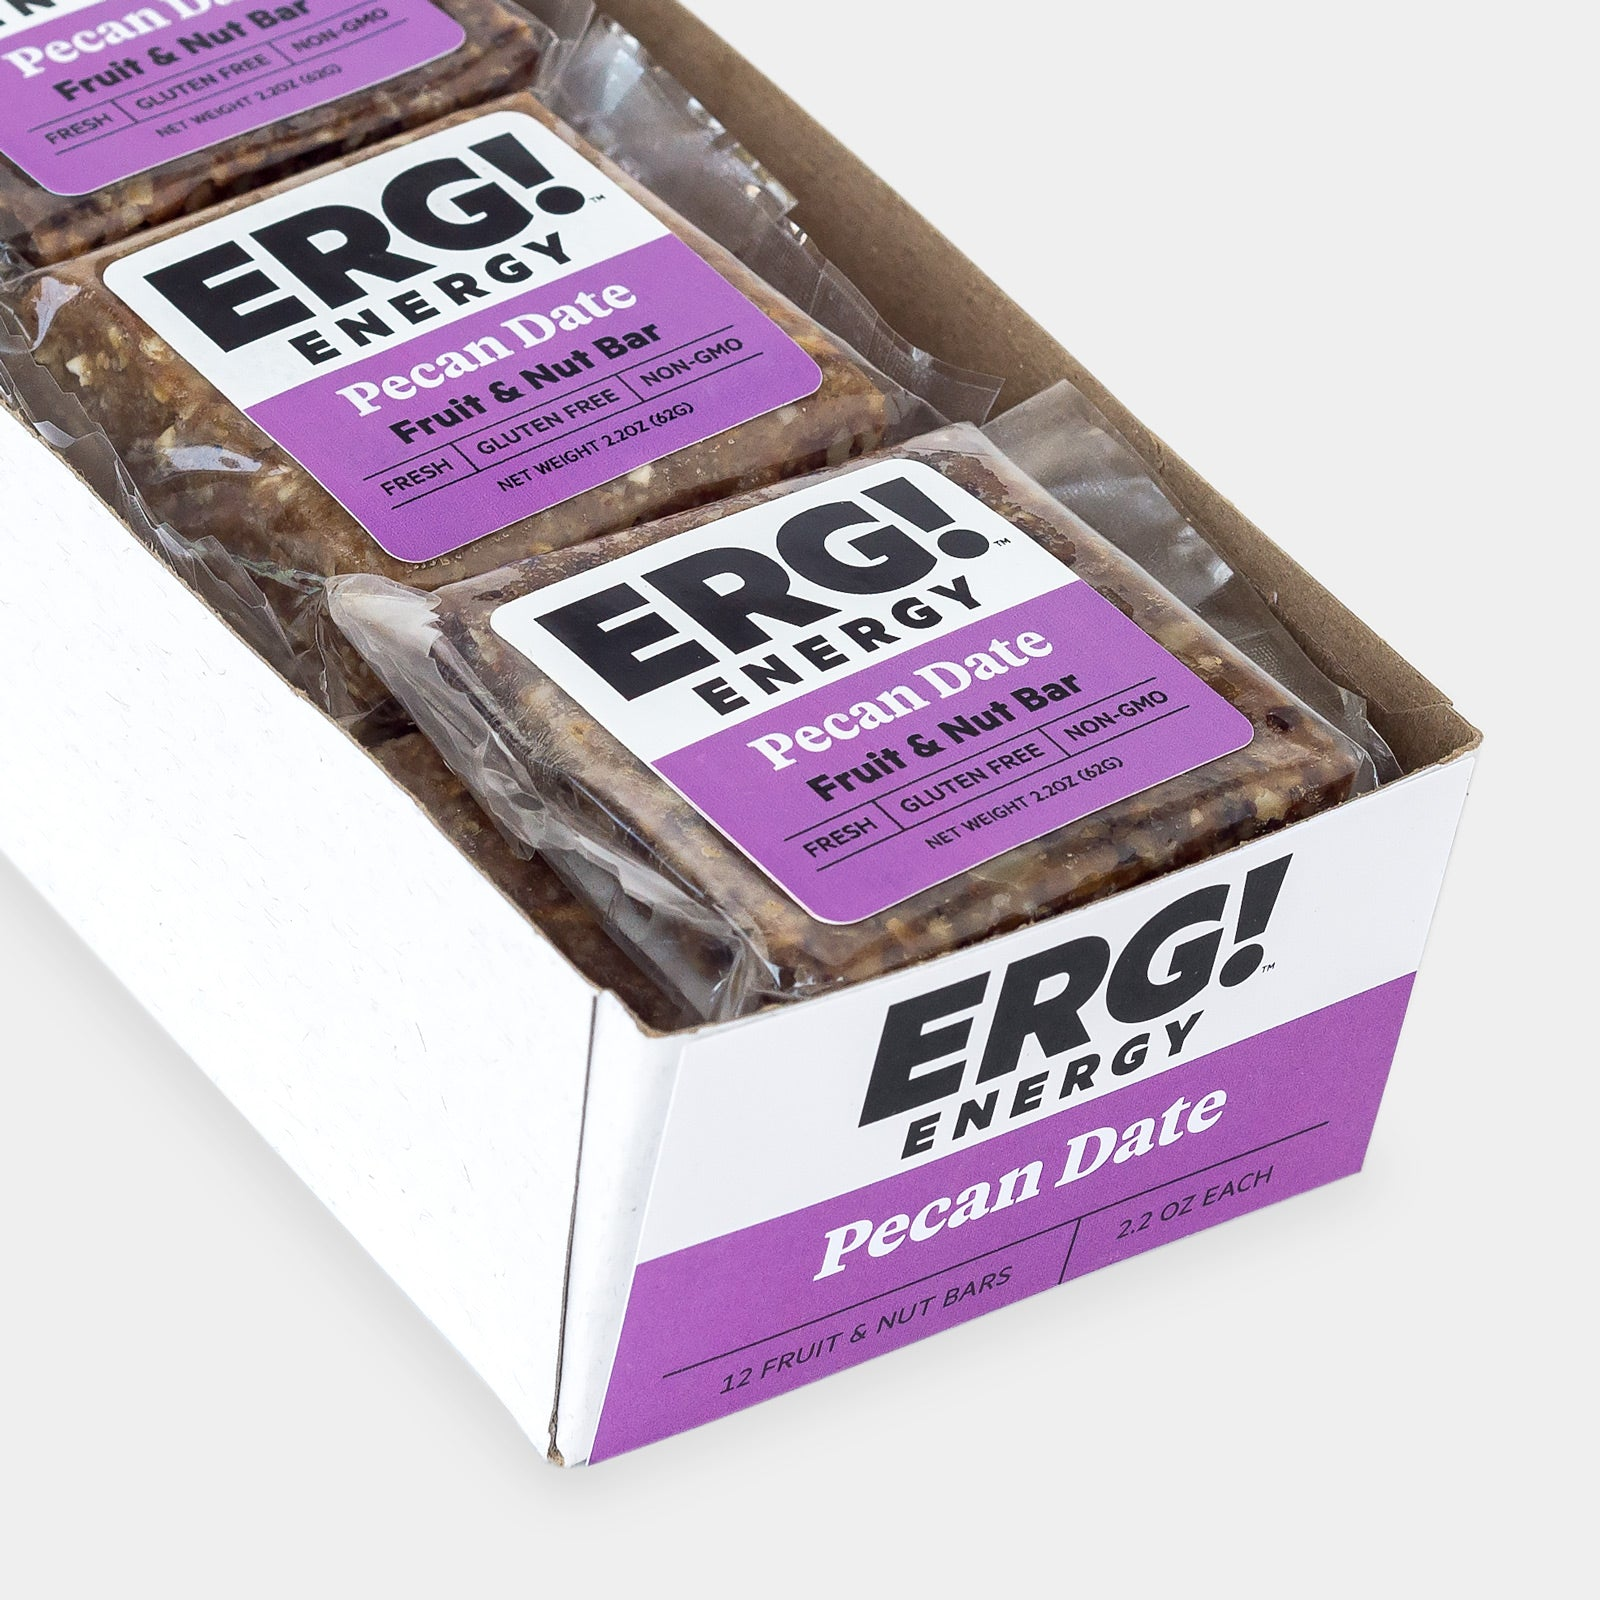 Pecan Date ERG! - Box of 12 Bars